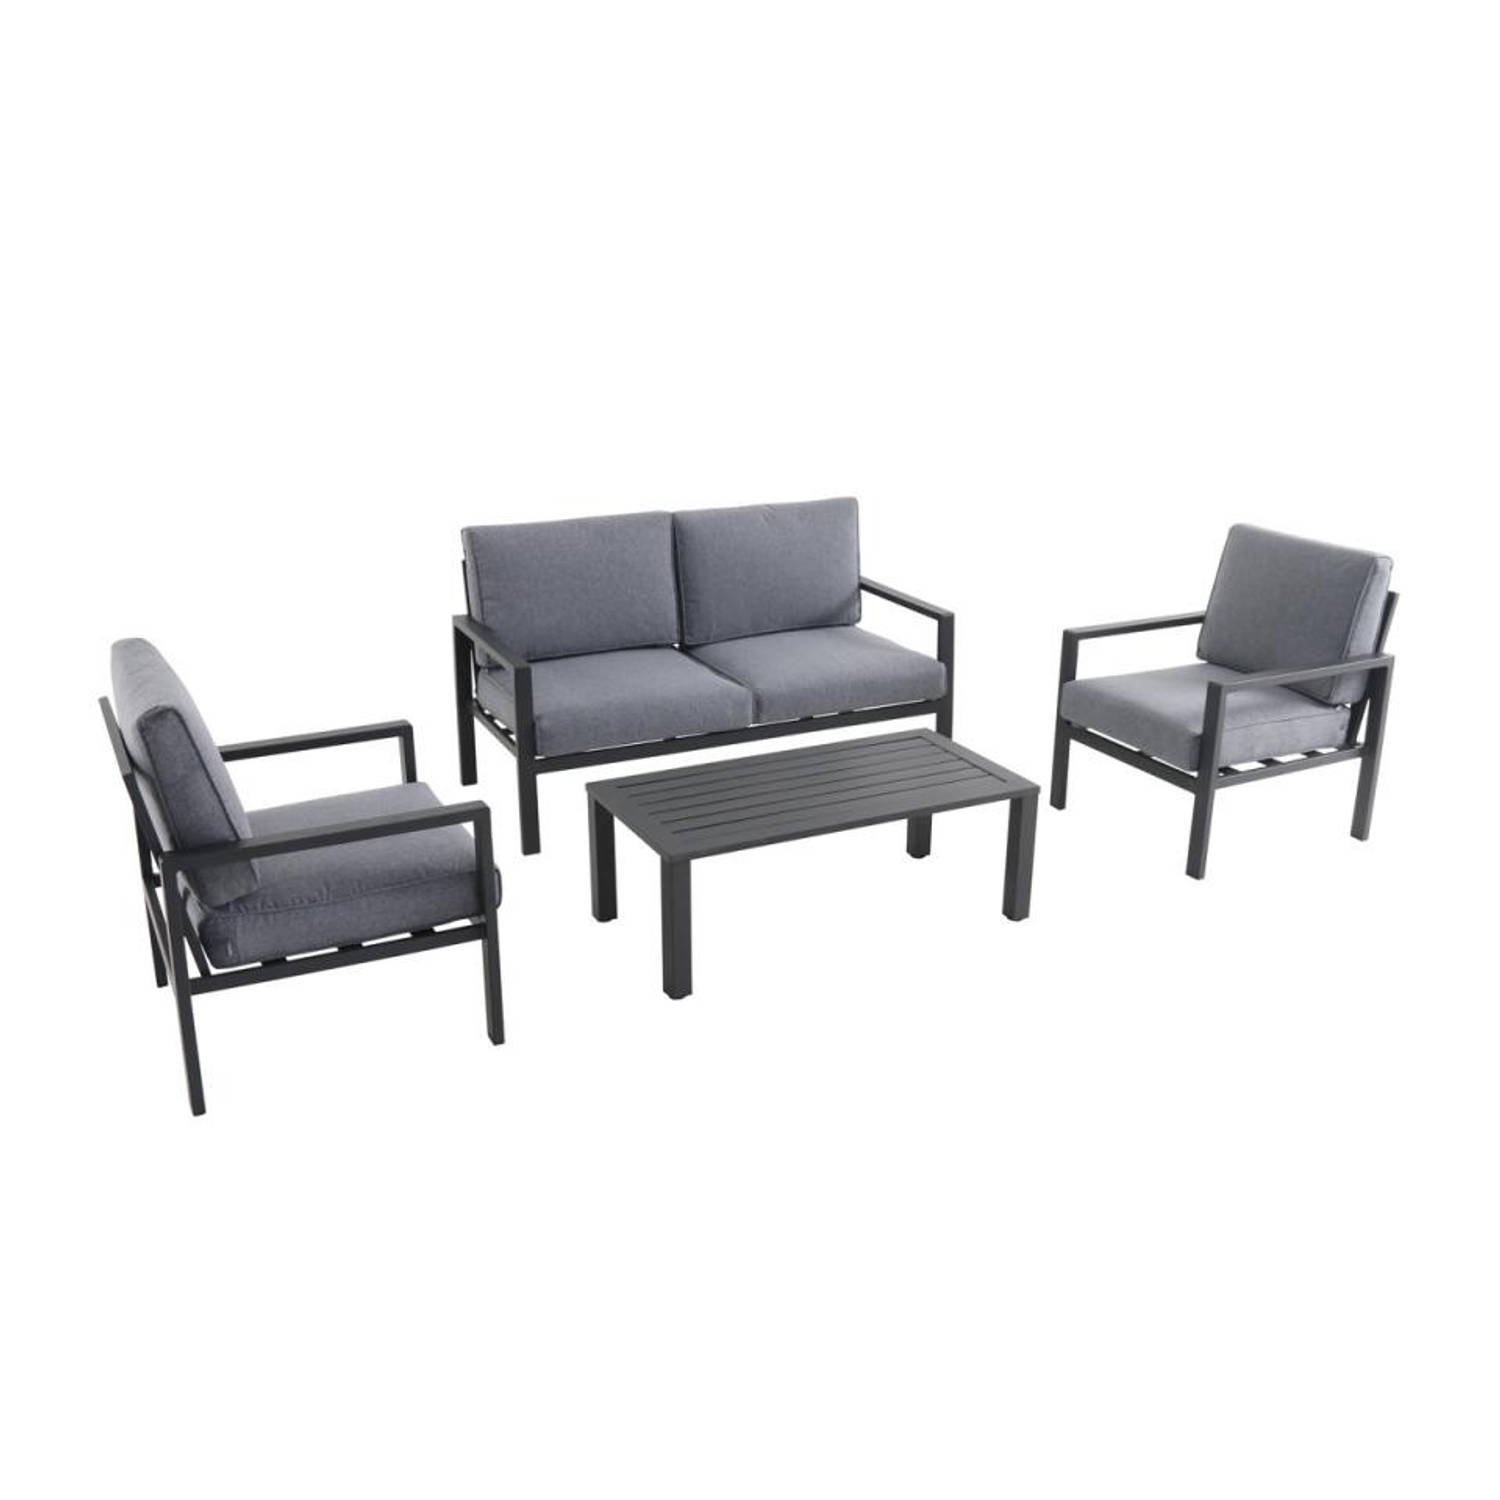 Royal Patio loungeset Noja